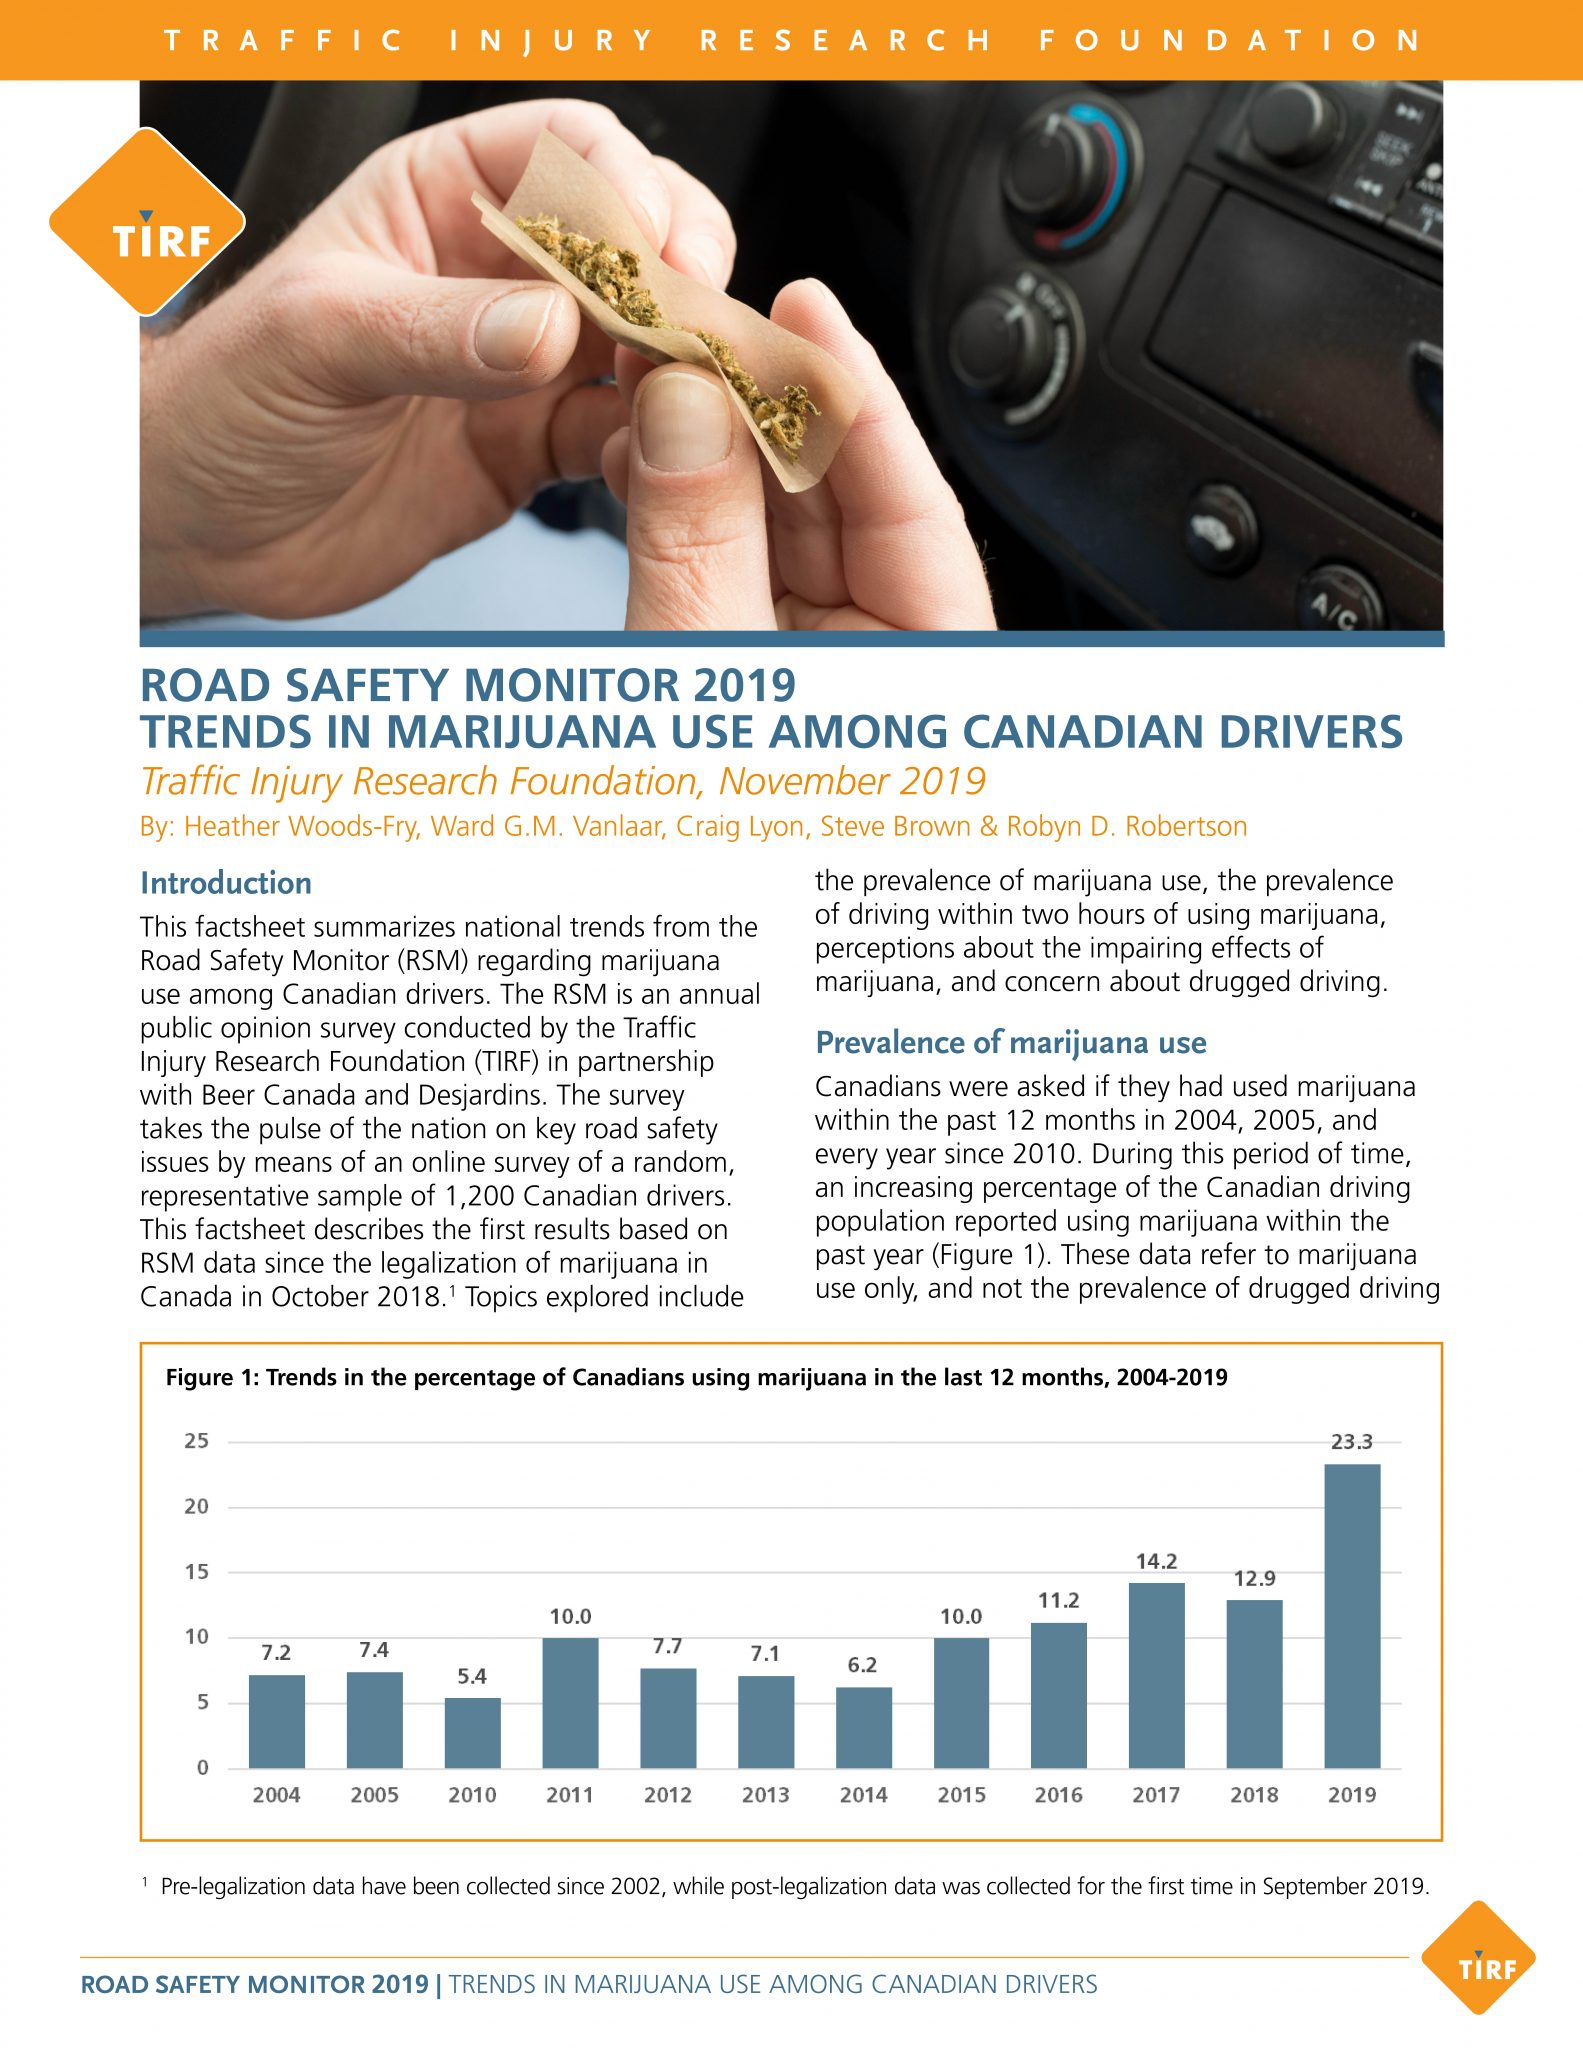 Road Safety Monitor 2019: Trends in Marijuana use among Canadian Drivers